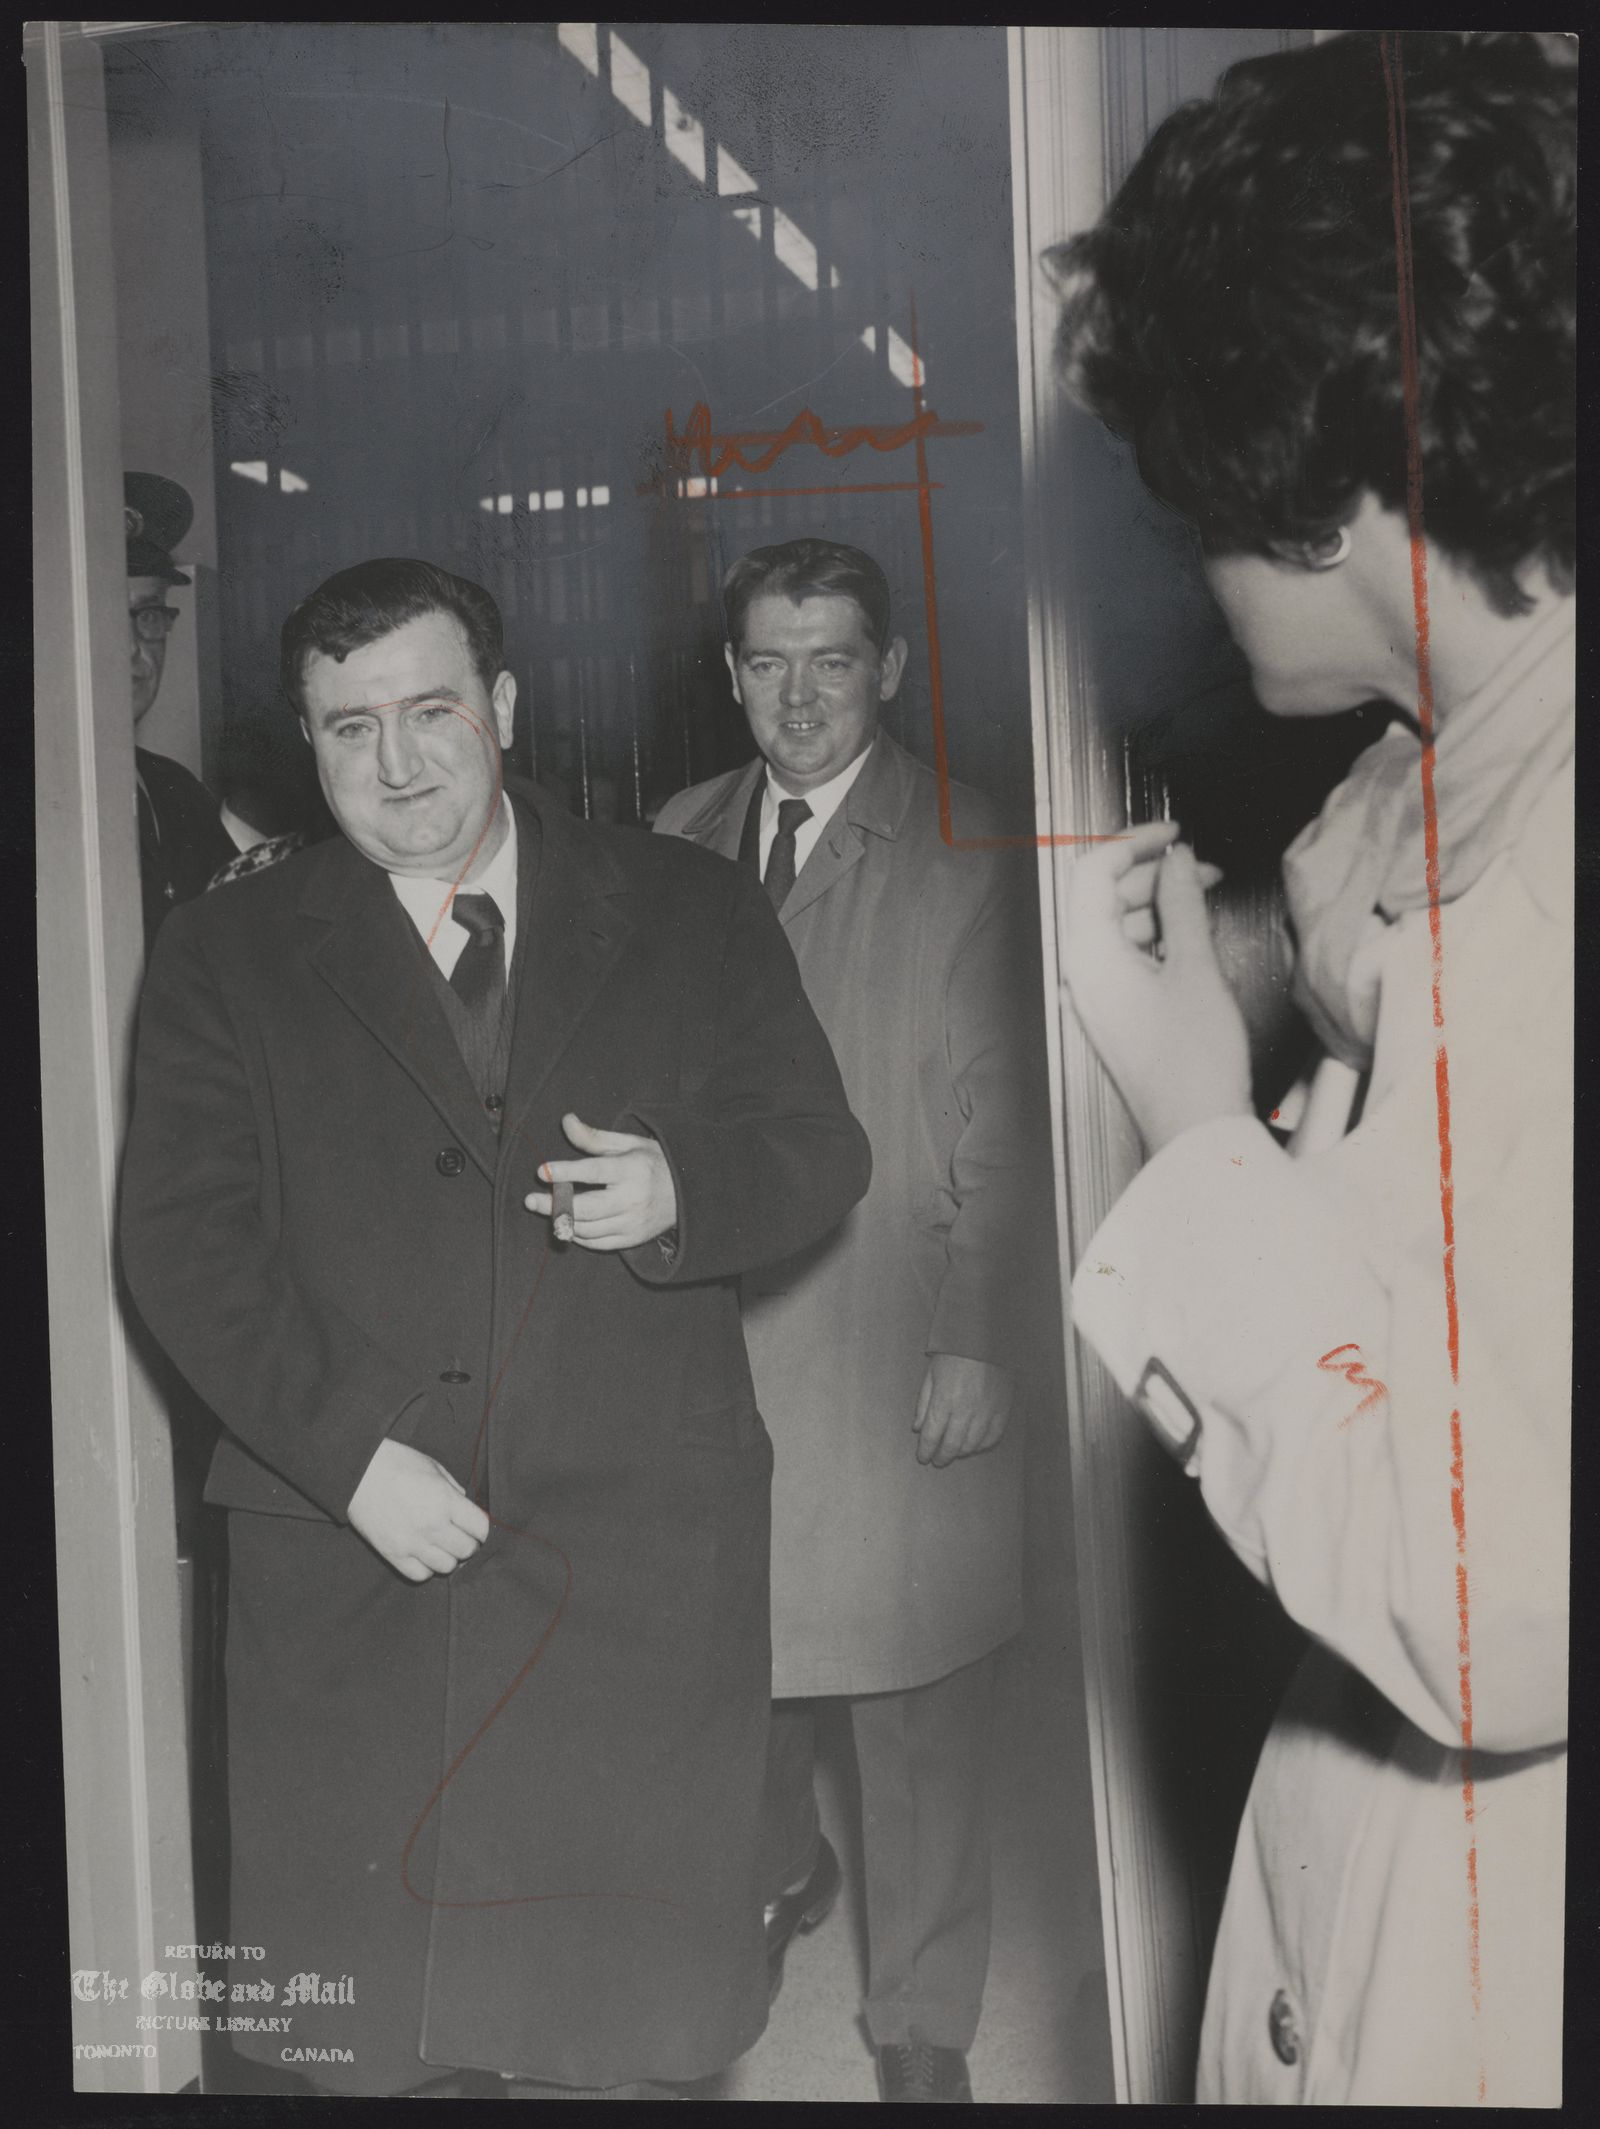 The notes transcribed from the back of this photograph are as follows: EAMONN MARTIN (background) Eamonn Martin with Brendan Behan, playwright. Behan leaving the court room after remand. He was relased on $1,100 bail yesterday, posted by Martin